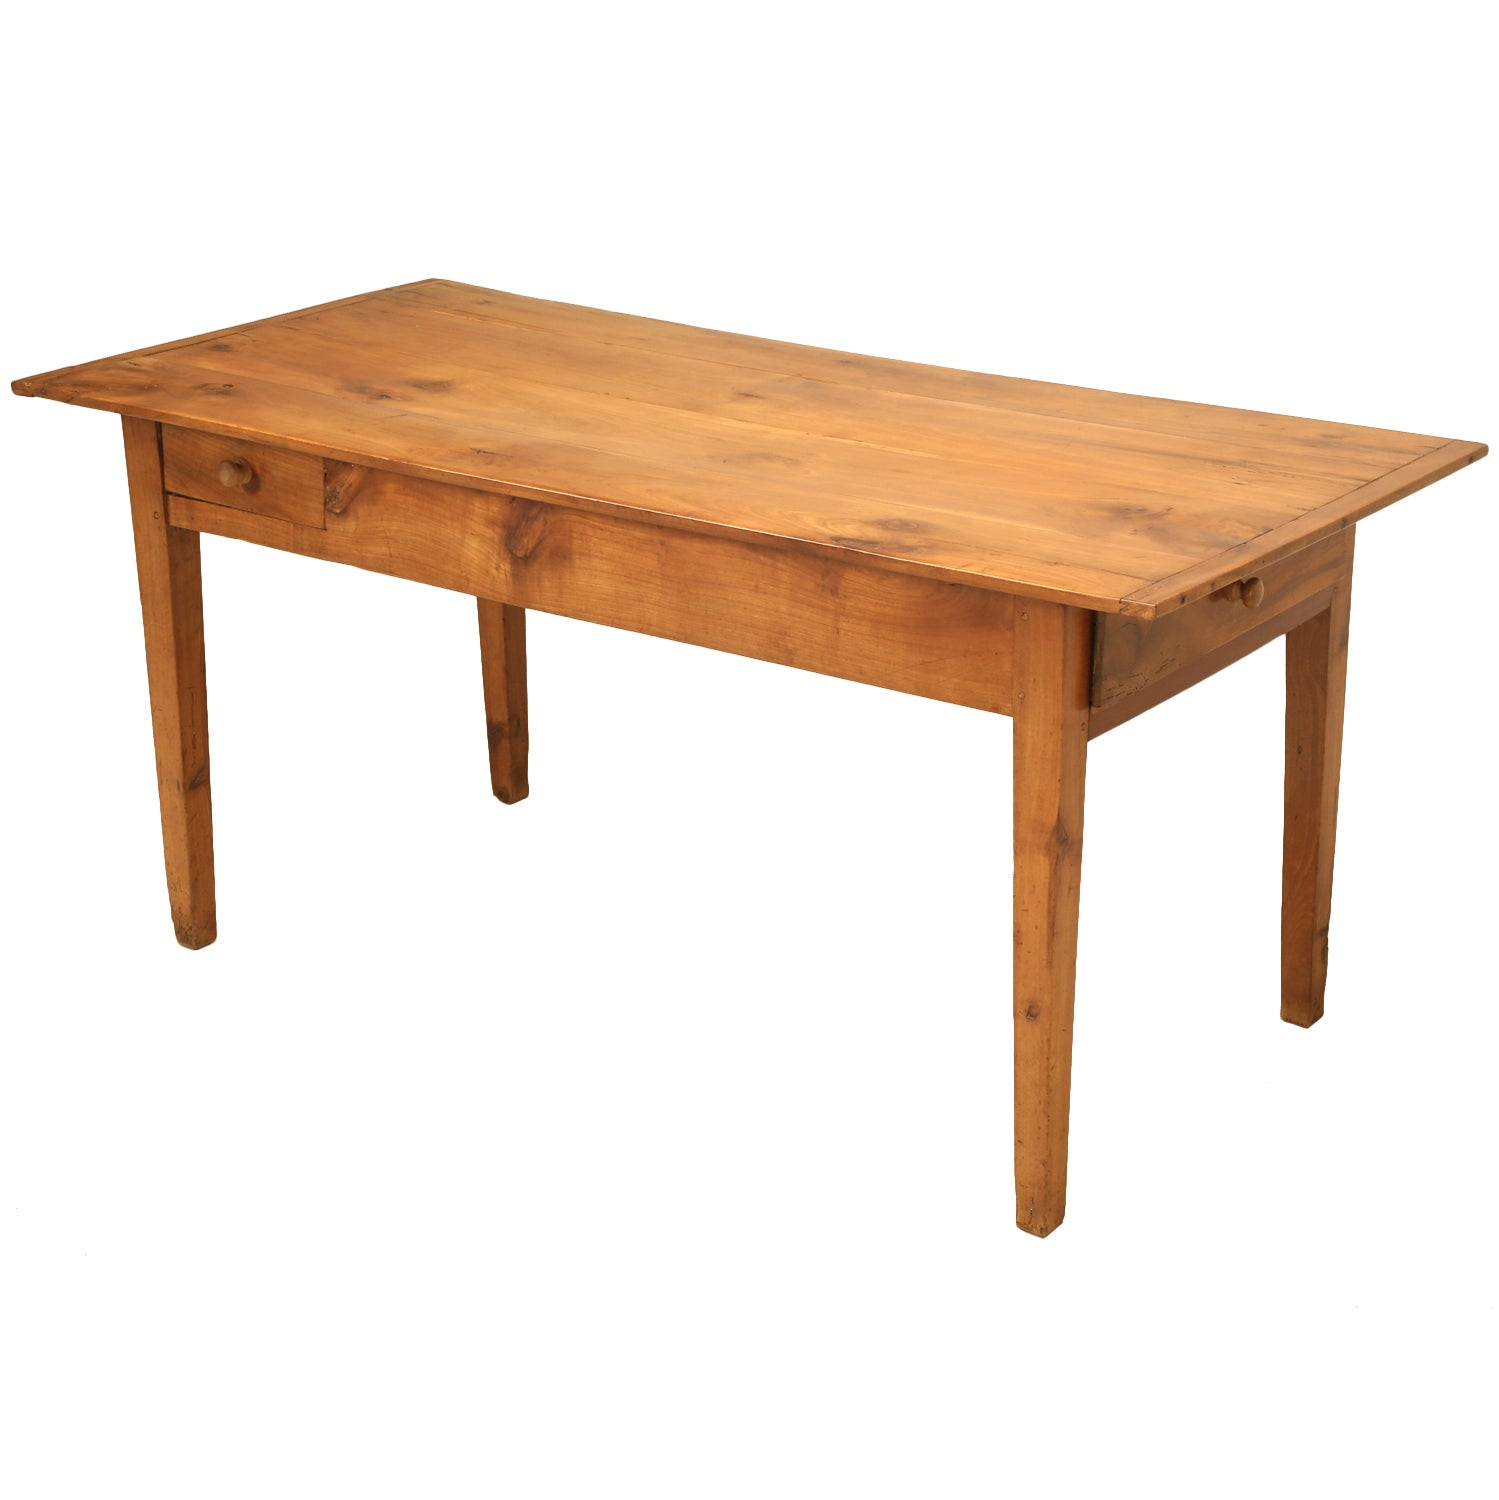 Antique Country French Farm Table or Kitchen Table in Cherry Wood